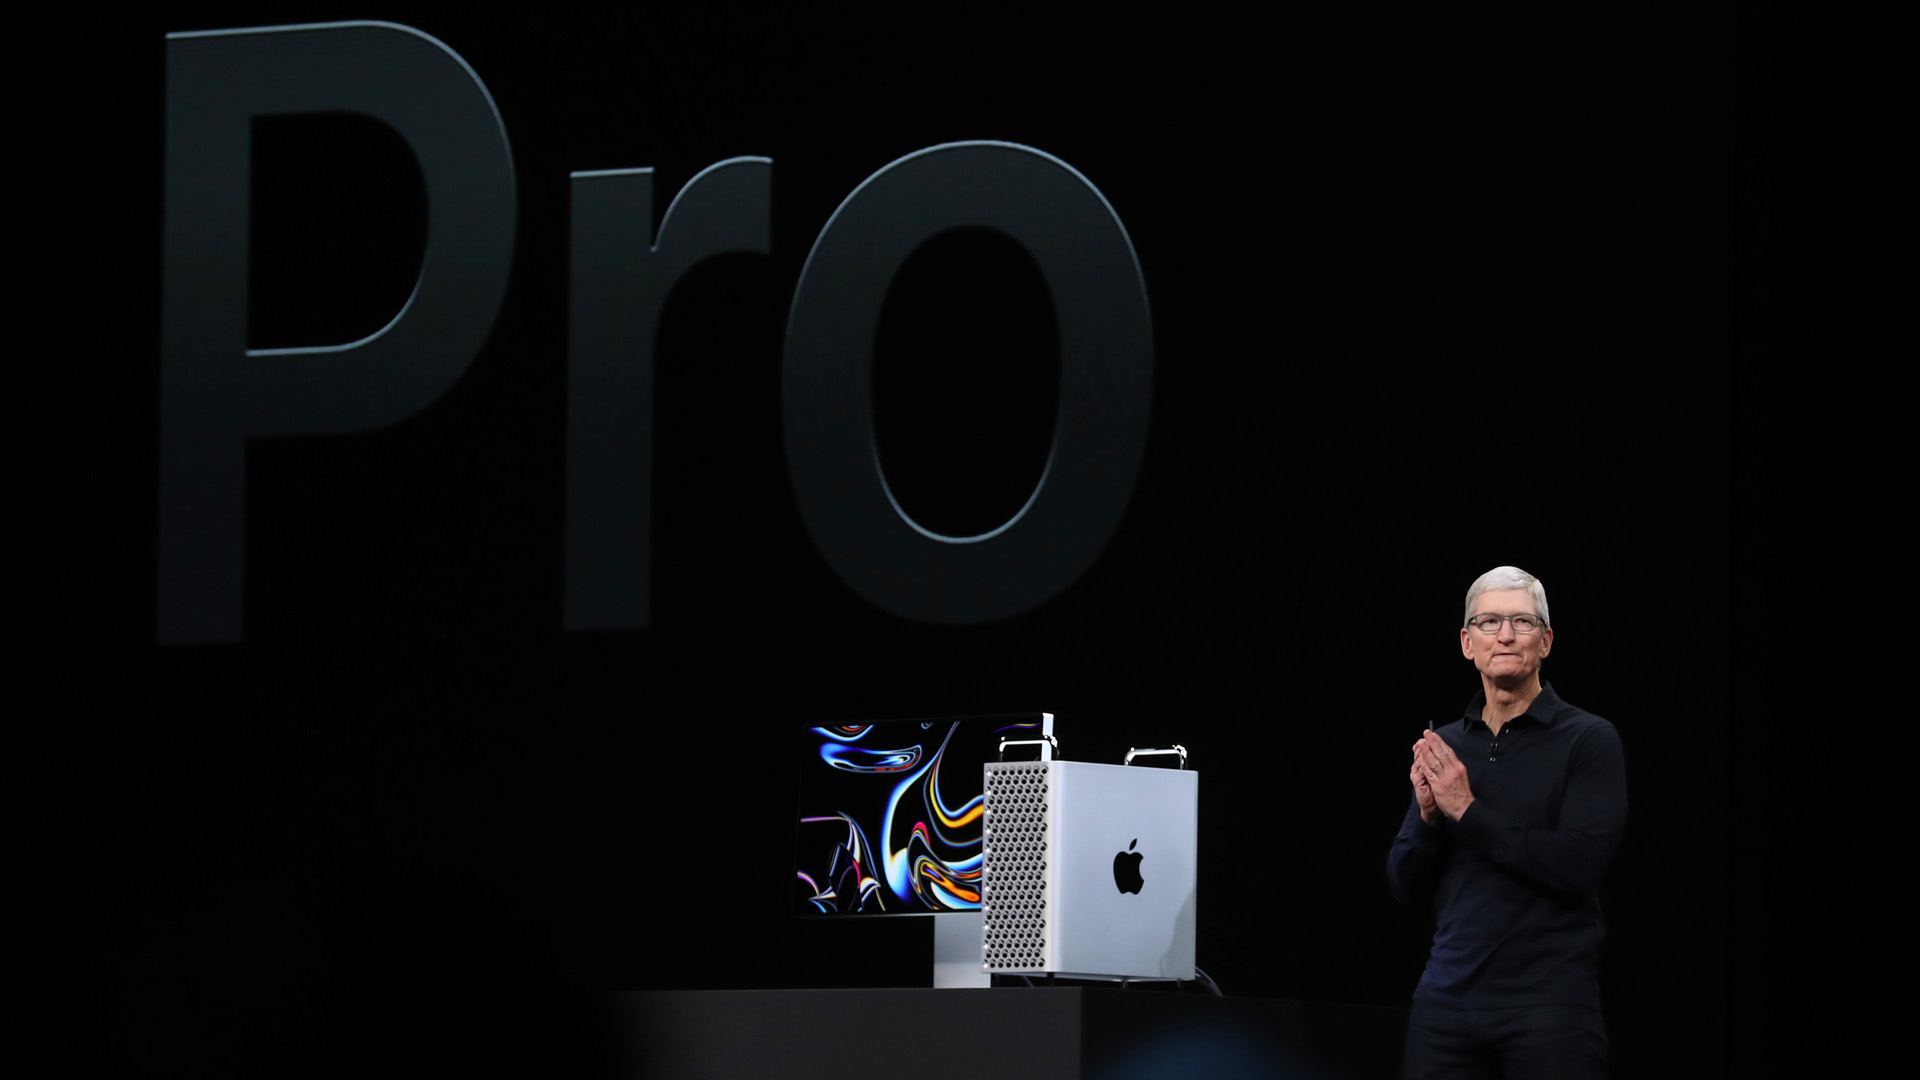 Apple CEO Tim Cook announces the new Mac Pro as he delivers the keynote address during the 2019 Apple Worldwide Developer Conference (WWDC) in San Jose Convention Center on June 3, 2019. (Credit: Justin Sullivan/Getty Images)